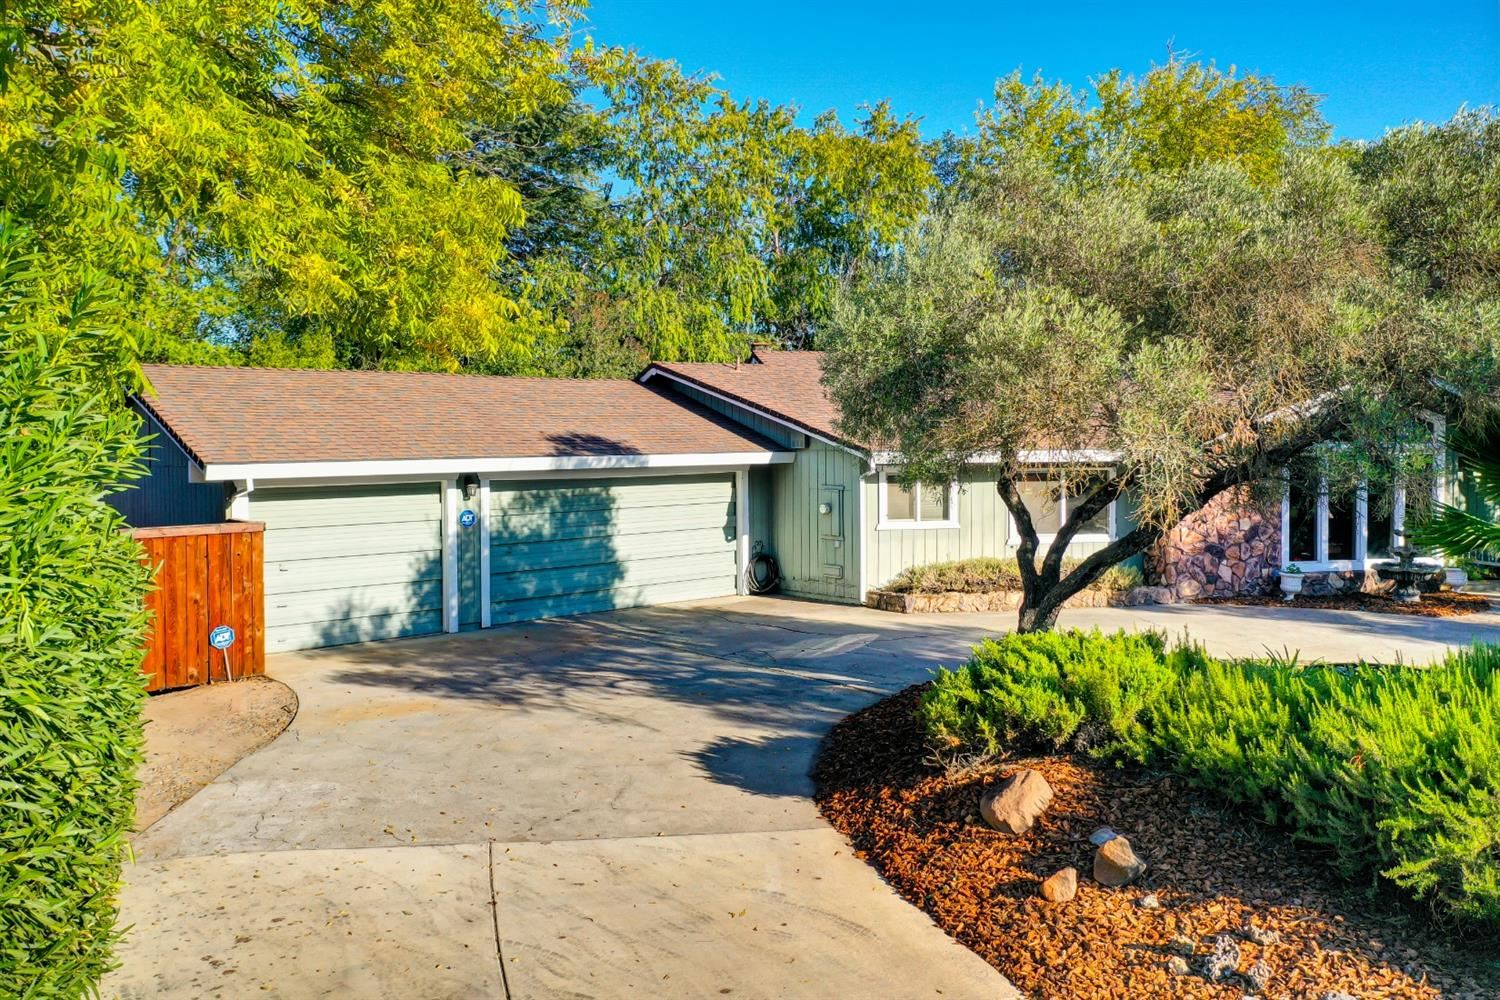 Photo of 8331 Olive Hill Court, Fair Oaks, CA 95628 (MLS # 20063523)